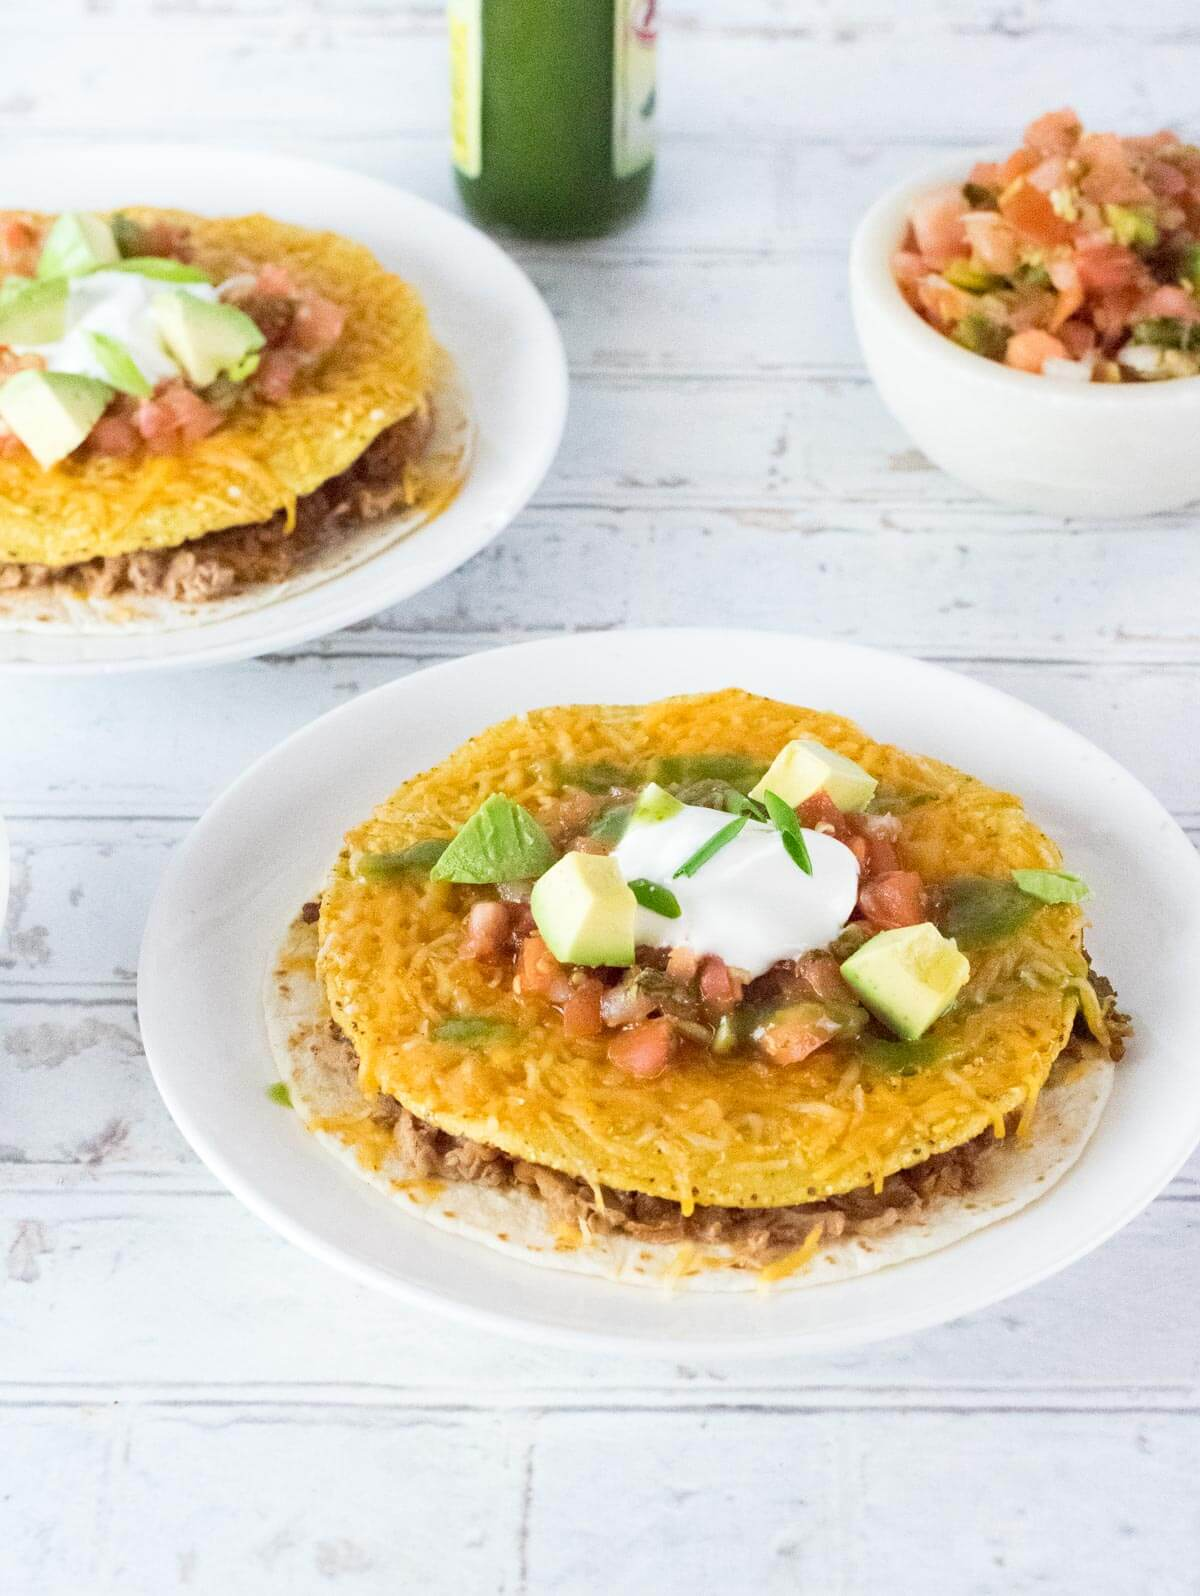 Two Taco Bell copycat Mexican pizzas on white plates.